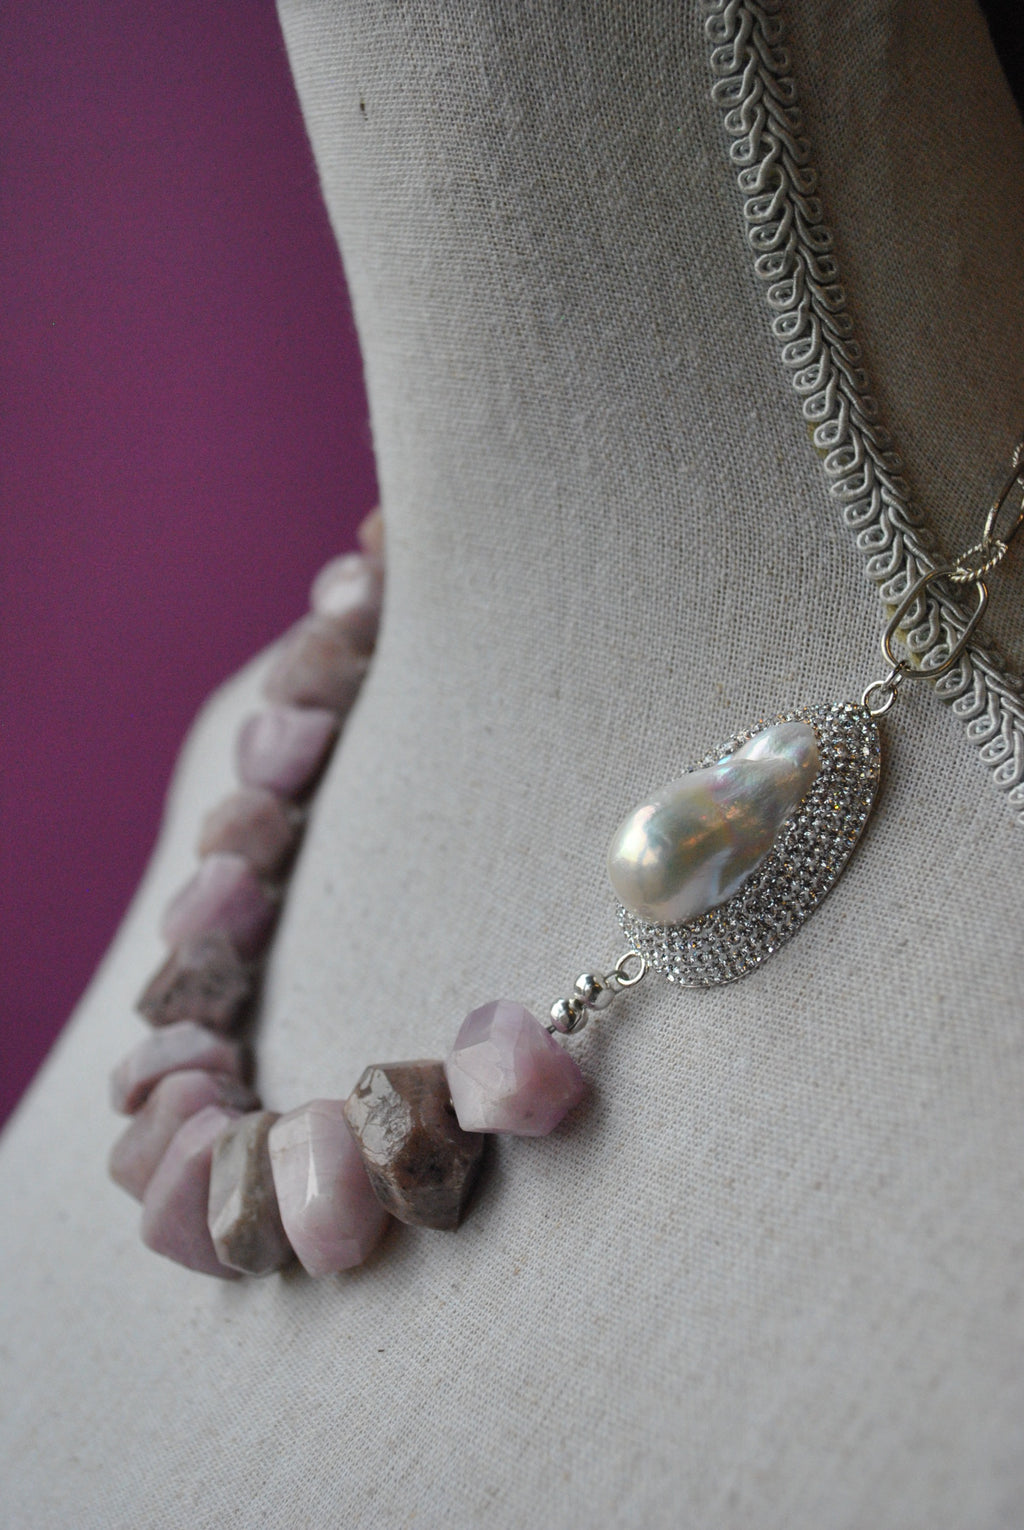 LAVENDER KANZANITE WITH MOTHER OF PEARLS AND SWAROVSKI CRYSTALS ASYMMETRIC STATEMENT NECKLACE